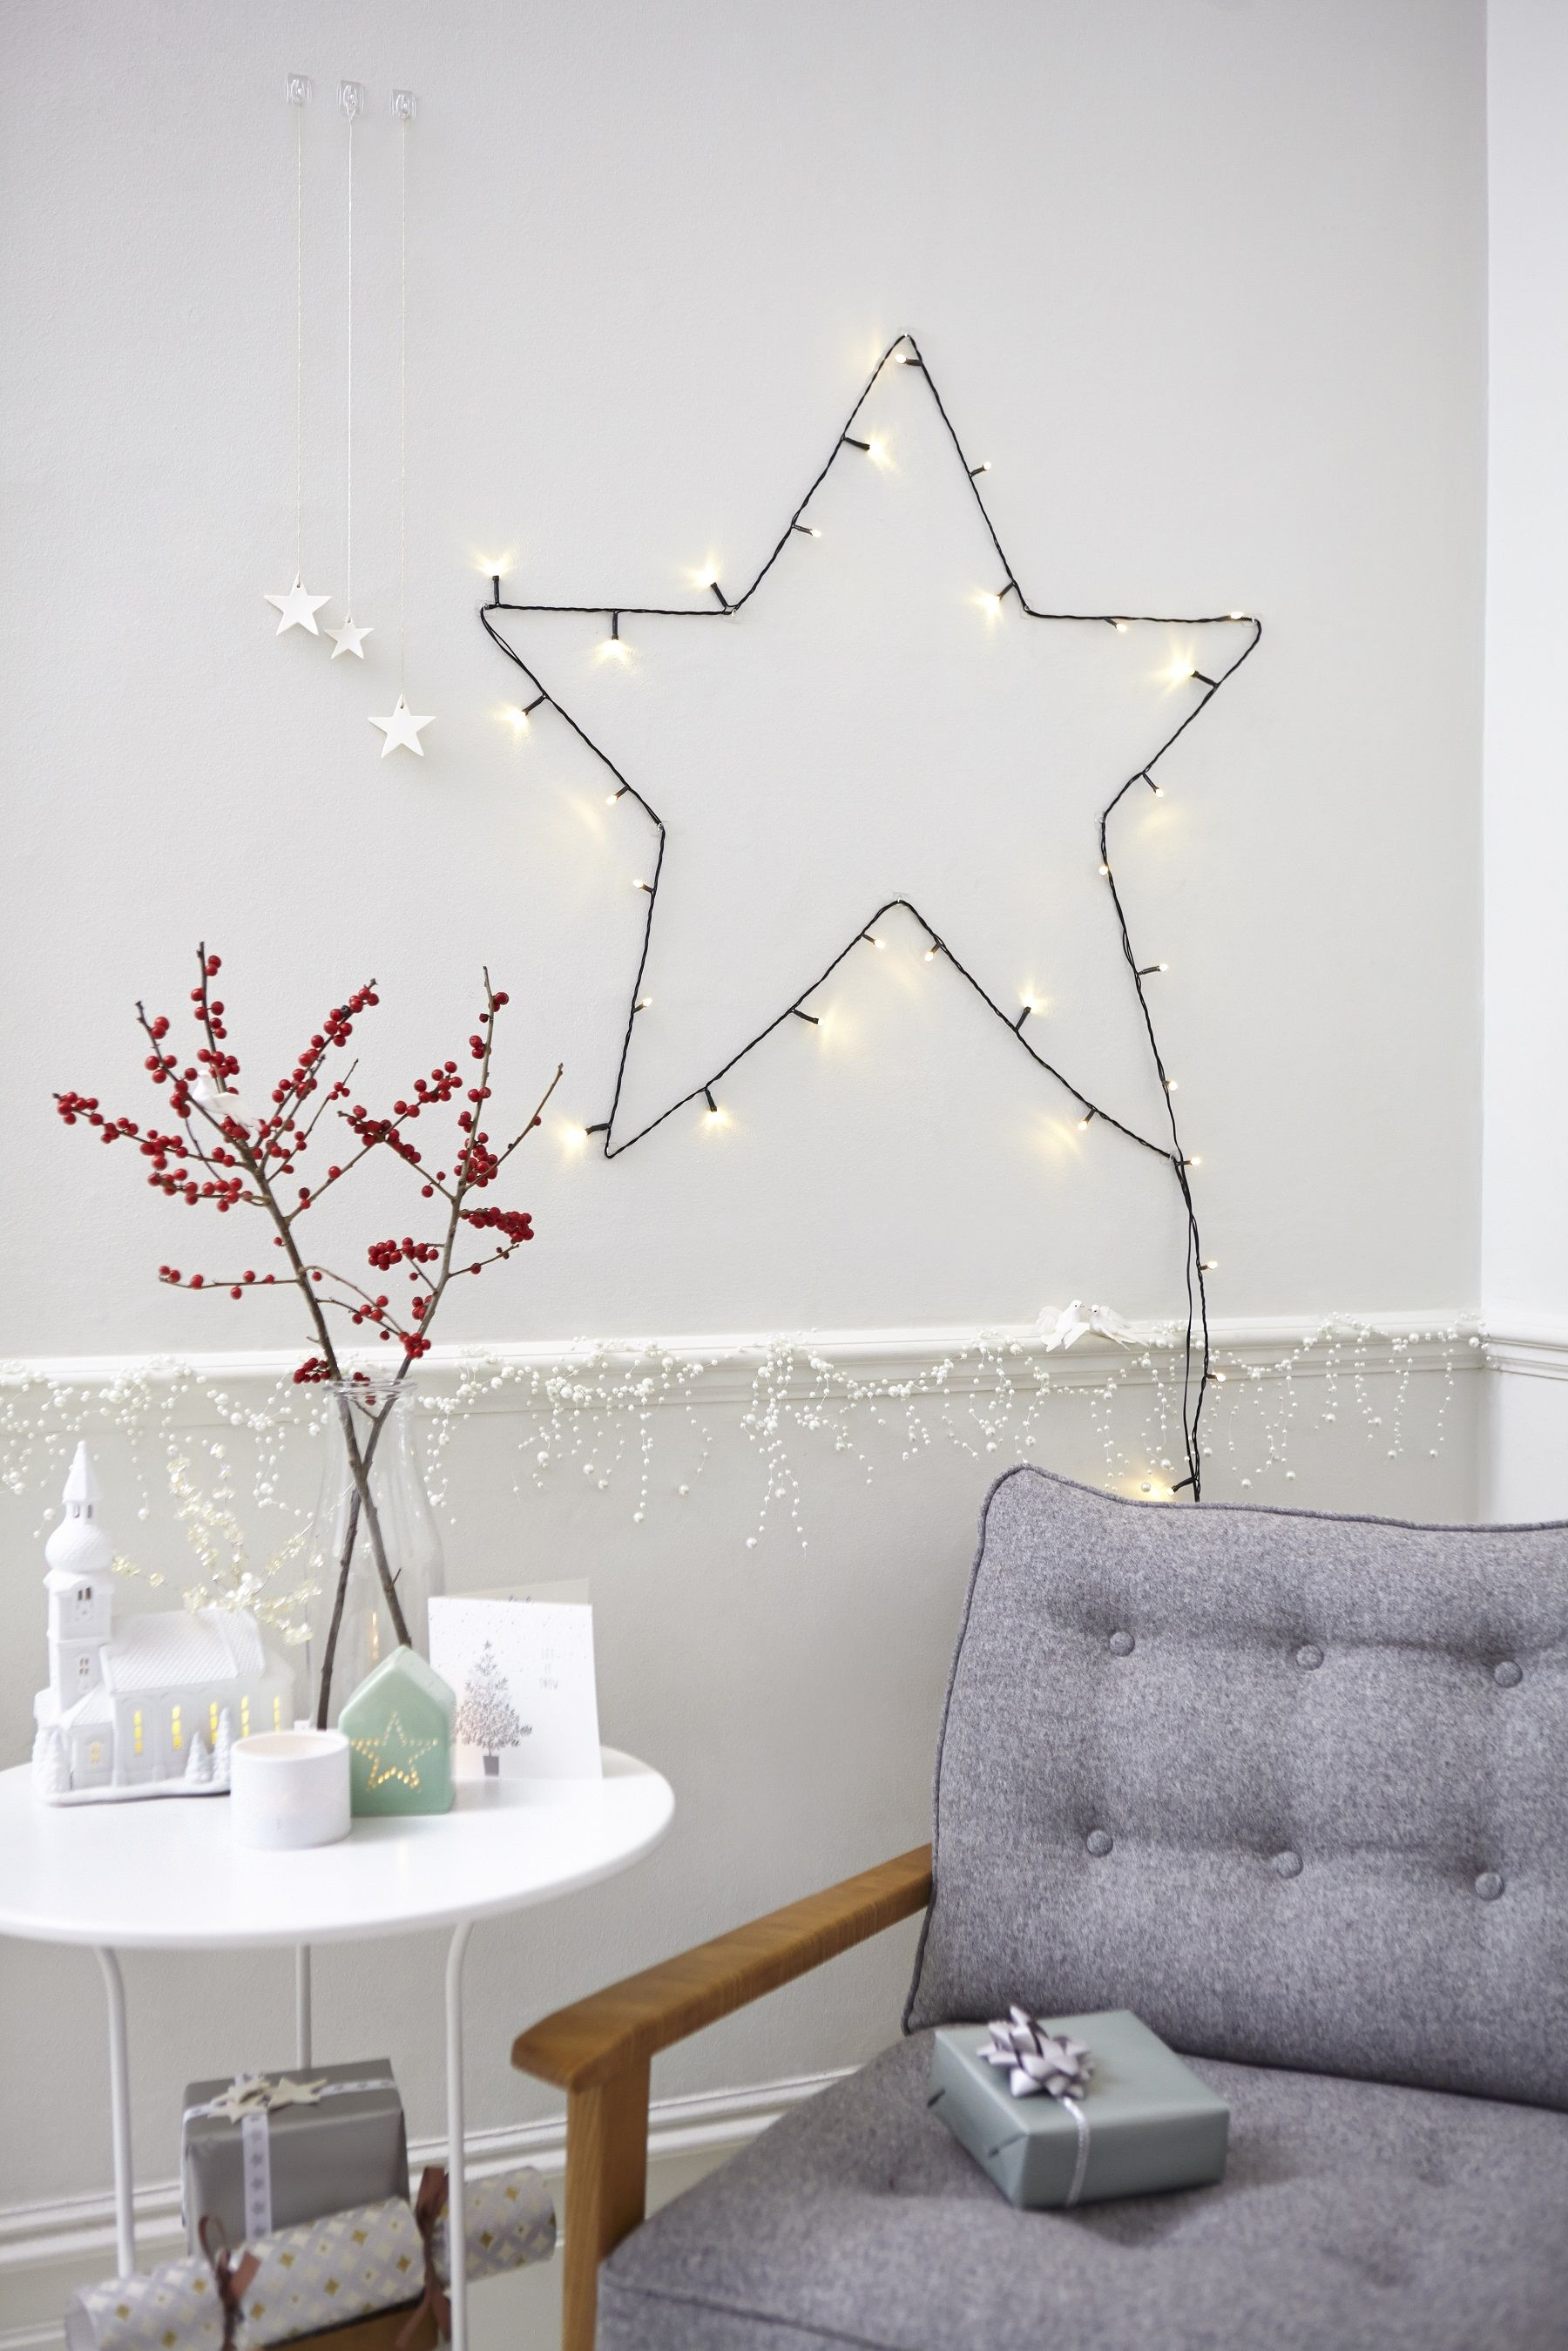 Set up some festive lights as a Christmas star  Just use Command     Set up some festive lights as a Christmas star  Just use Command decorating  clips and